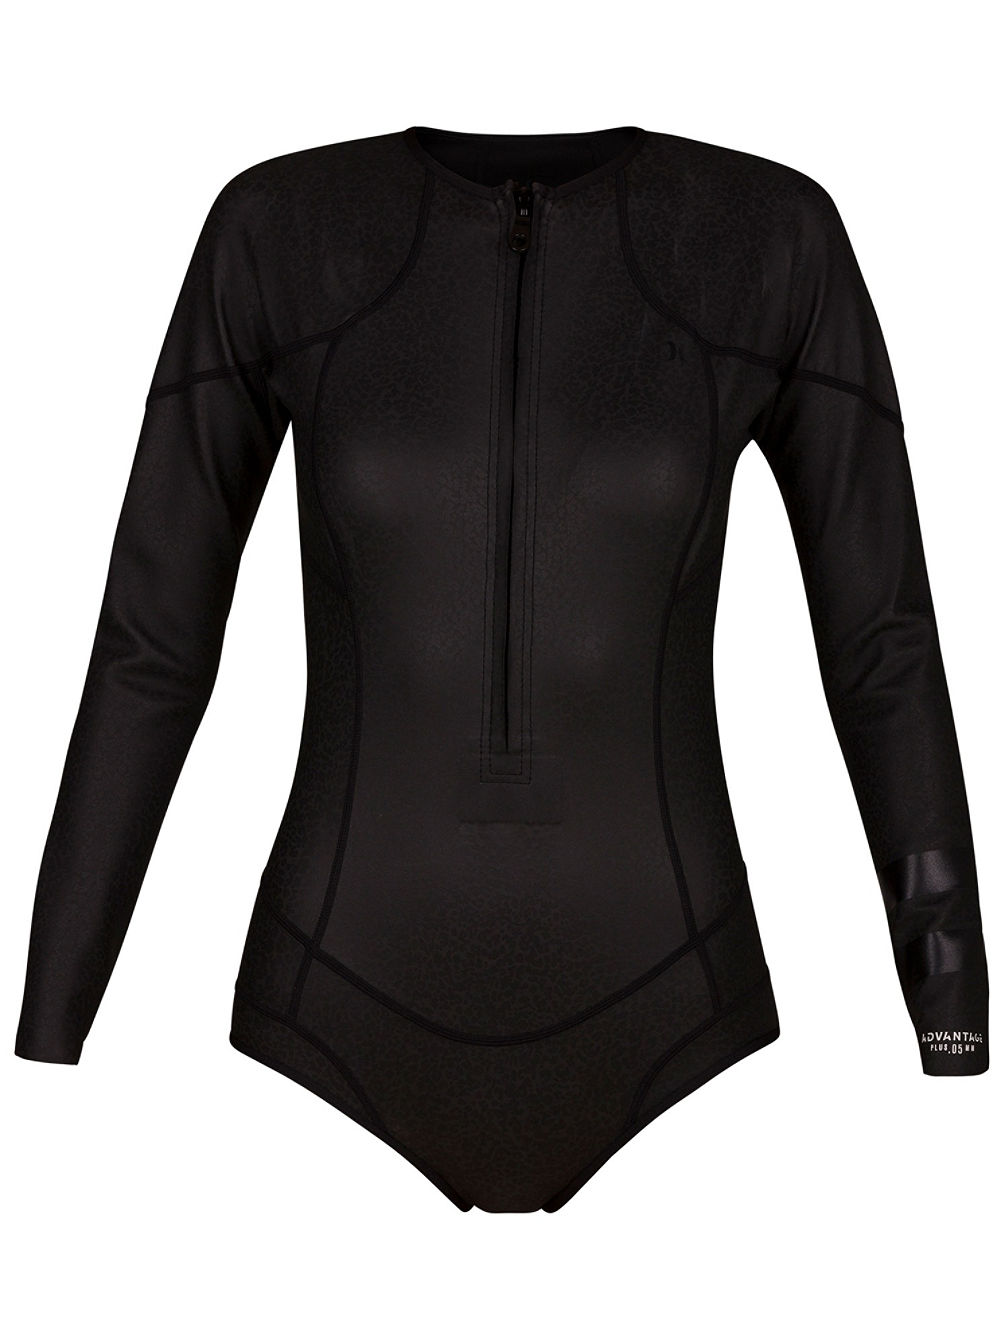 Advantage Plus Windskin Wetsuit